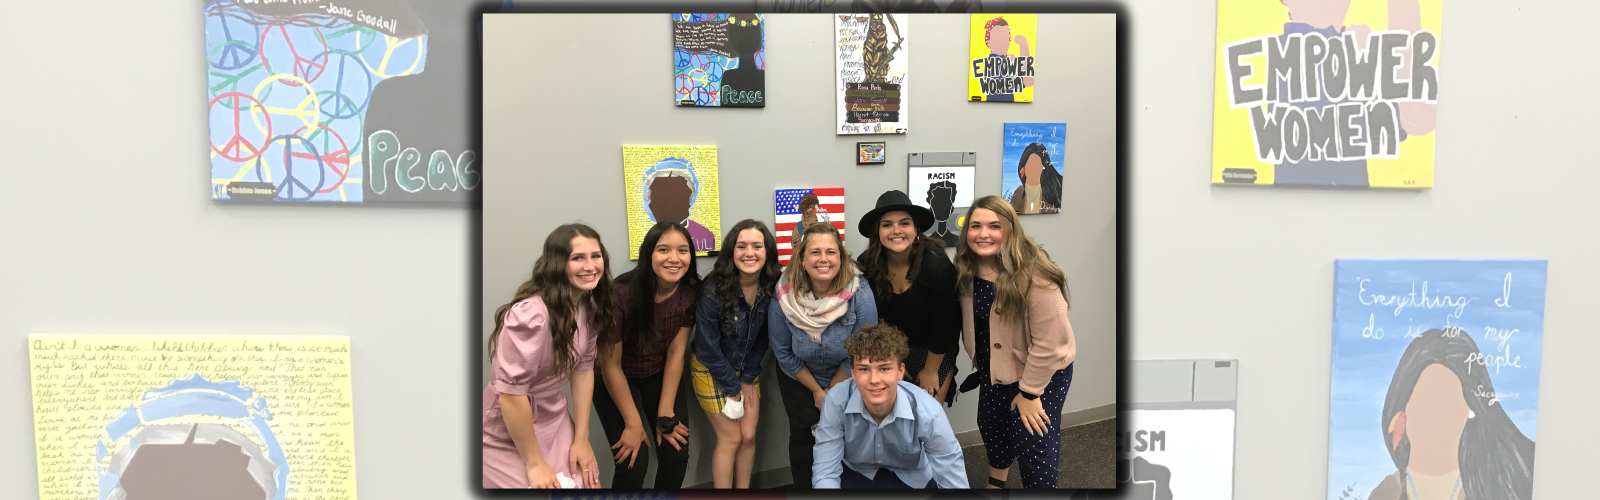 Debbie Jones, Citlali Aguilar-Montiel, Sarah Verville, Mrs. Keber, Ella Hernandez, Emma Wallace and Gage Stemen pose in front of the paintings the students created for the YWCA